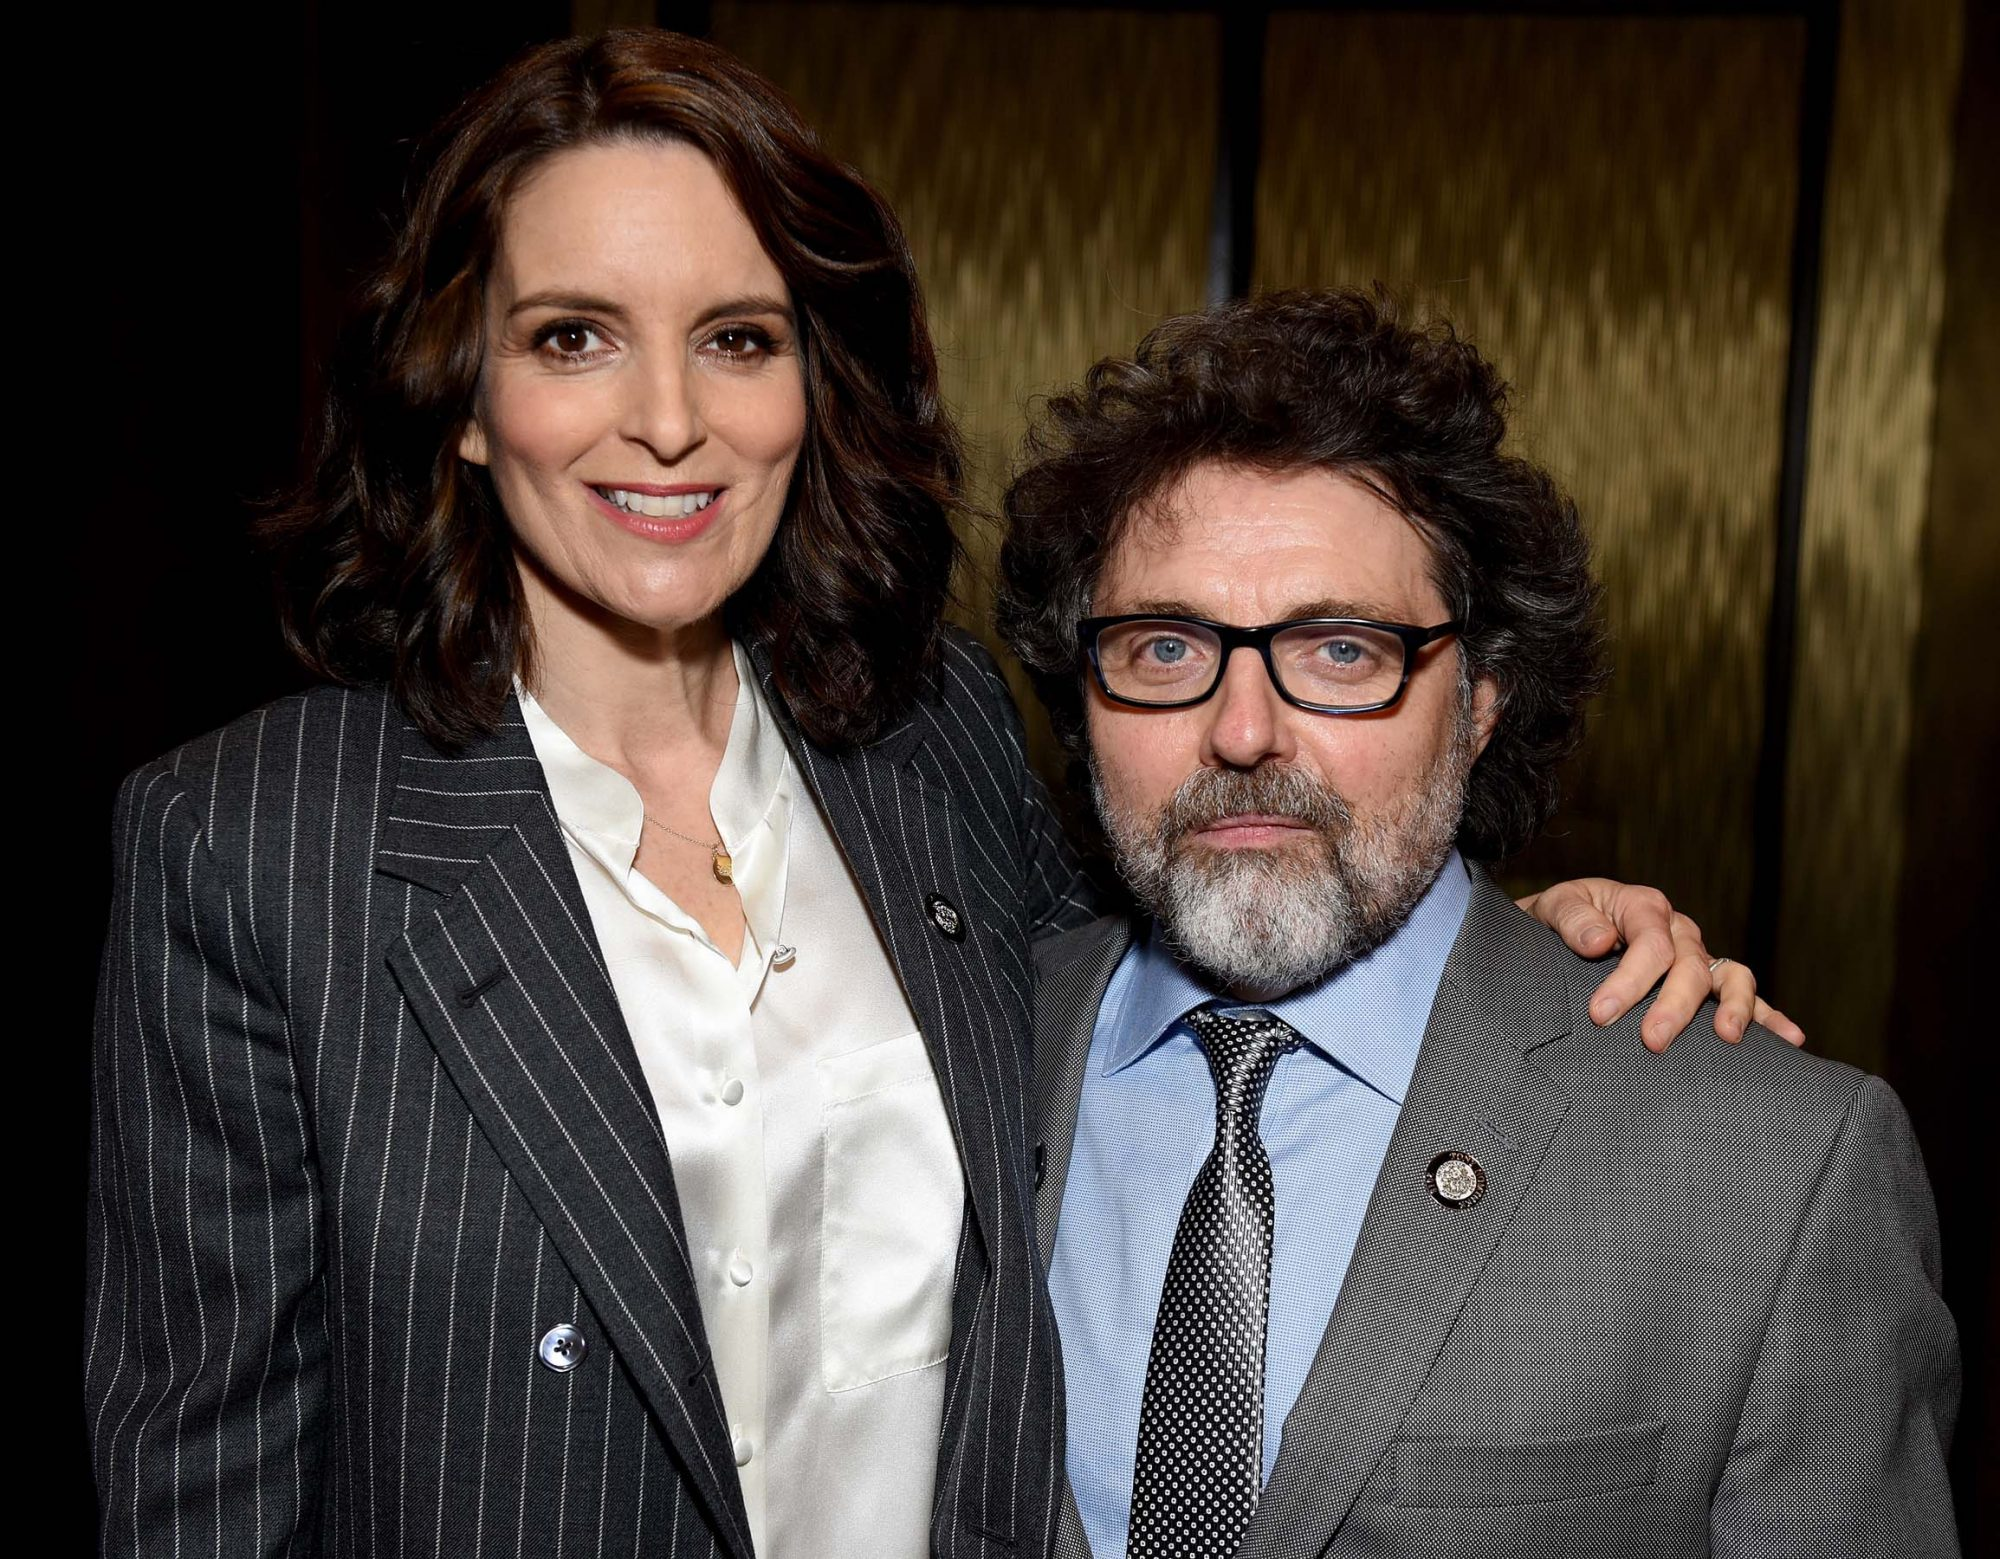 Tina Fey and Jeff Richmond (Mean Girls)